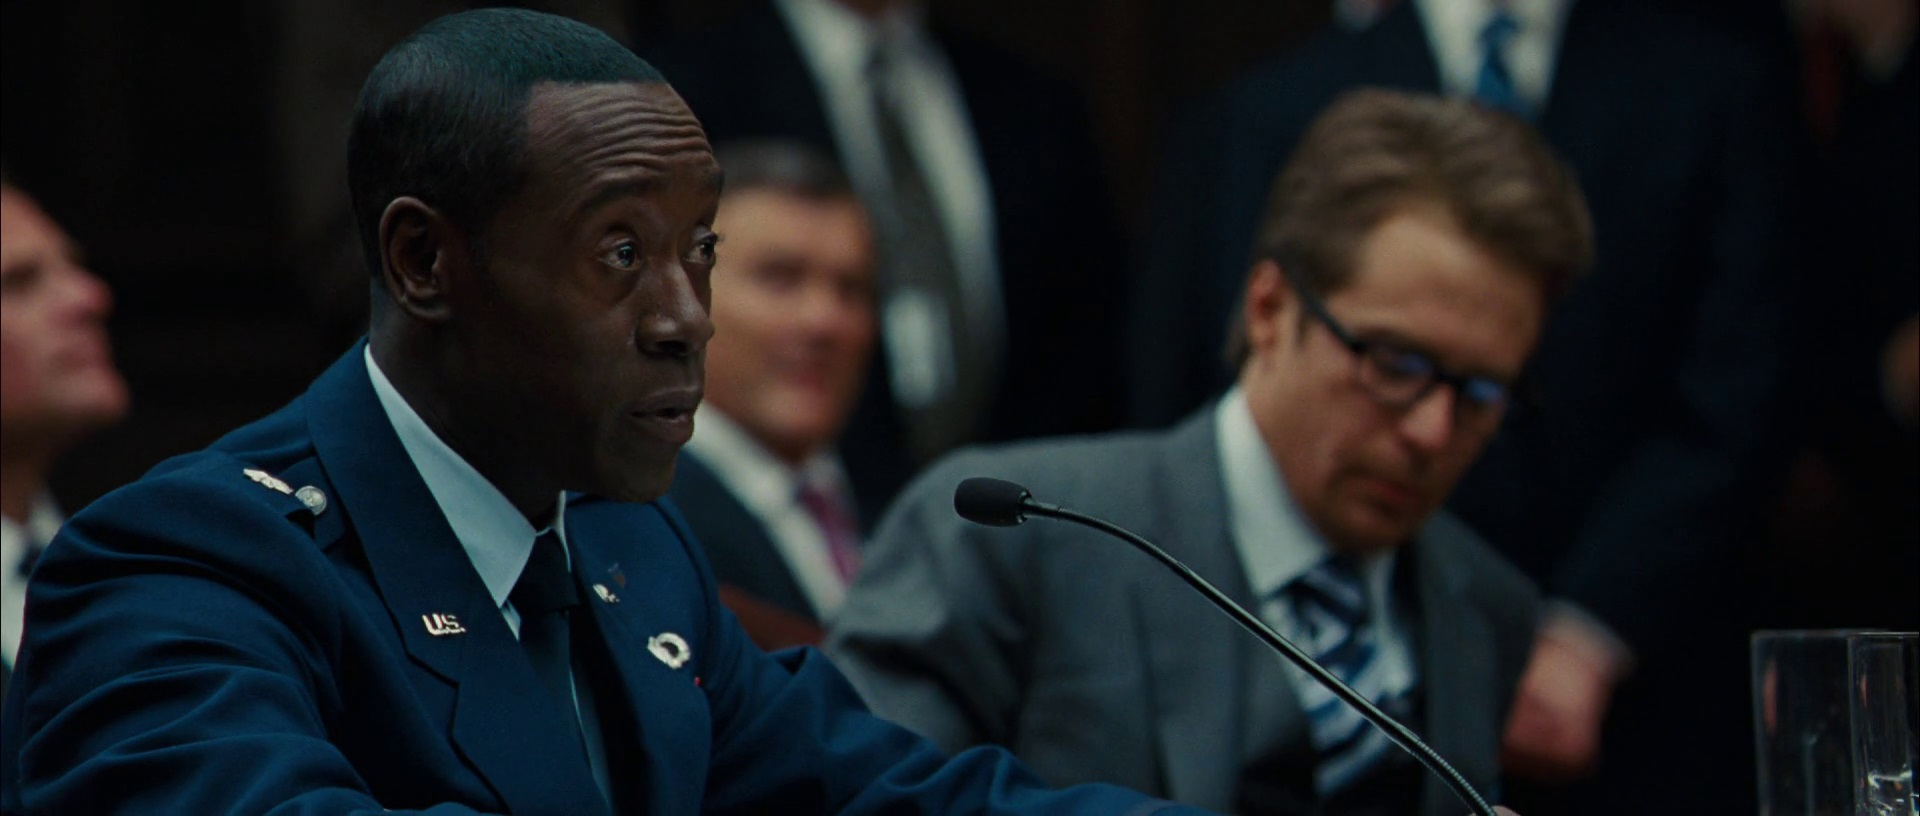 File:Don Cheadle James Rhodey Rhodes Sam Rockwell Justin Hammer Iron Man 2 Pic.jpg